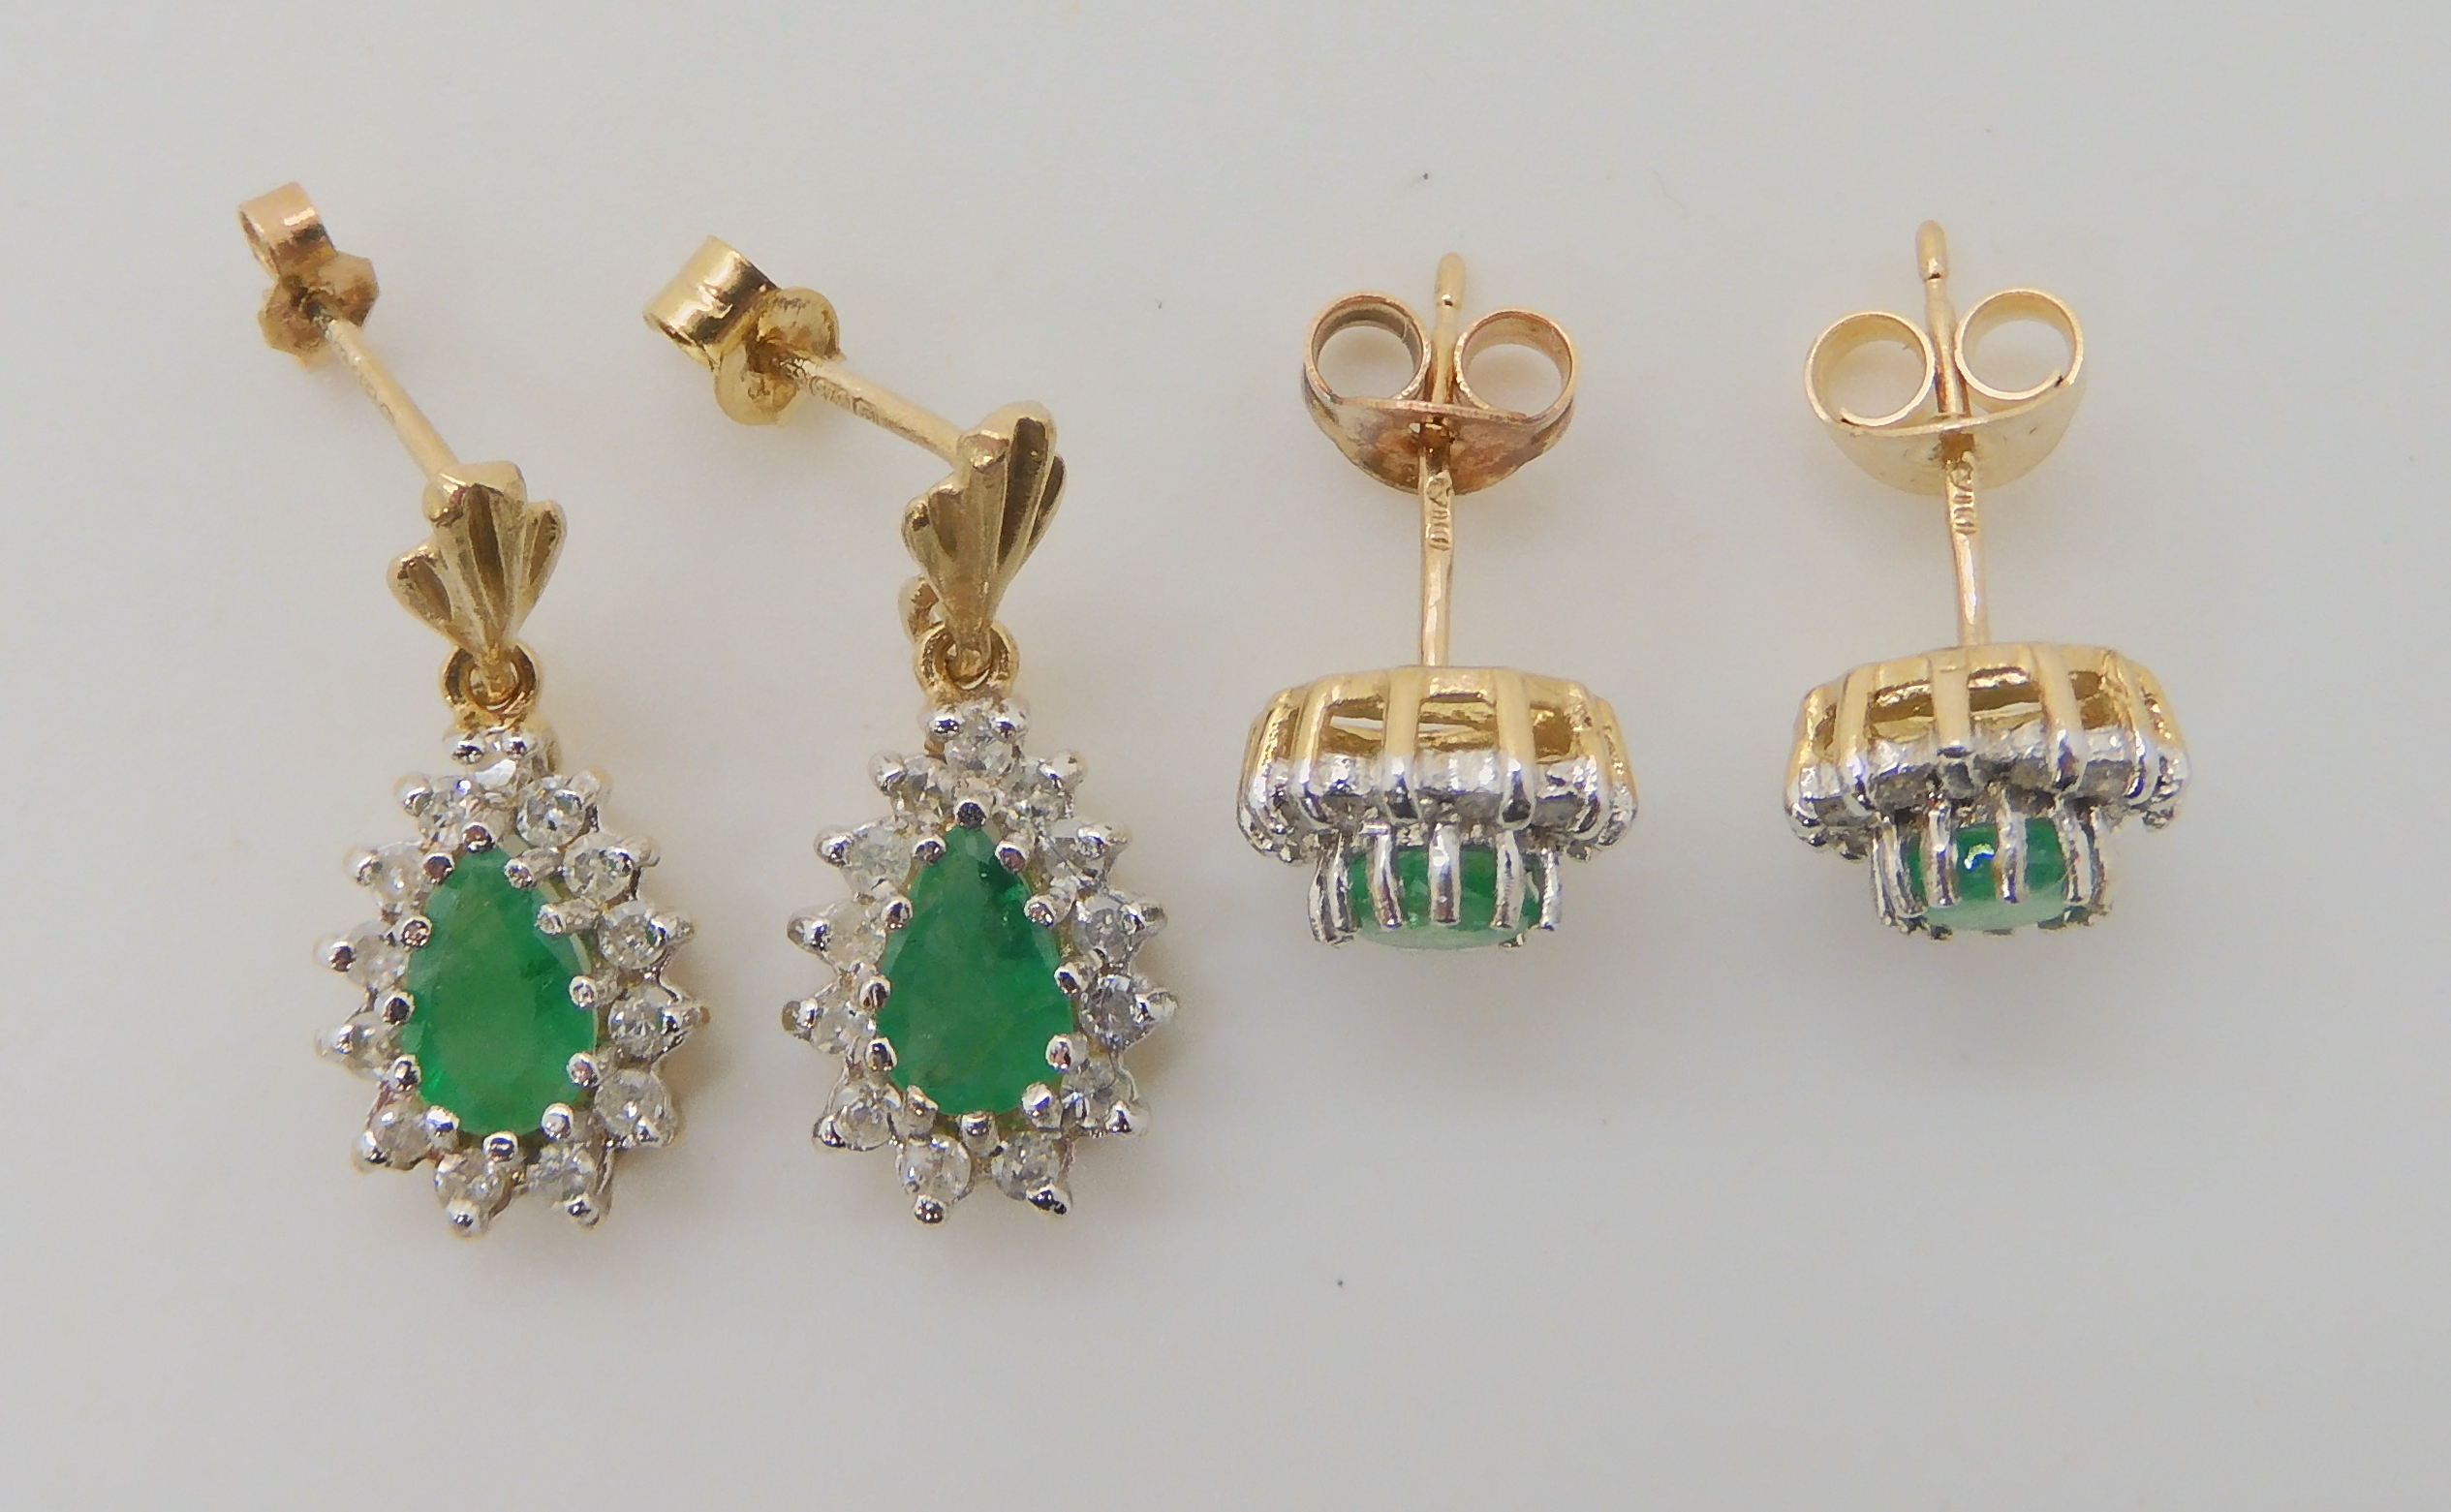 TWO PAIRS OF EMERALD AND DIAMOND EARRINGS pear shaped emerald and diamond drop earrings, set with - Image 3 of 4